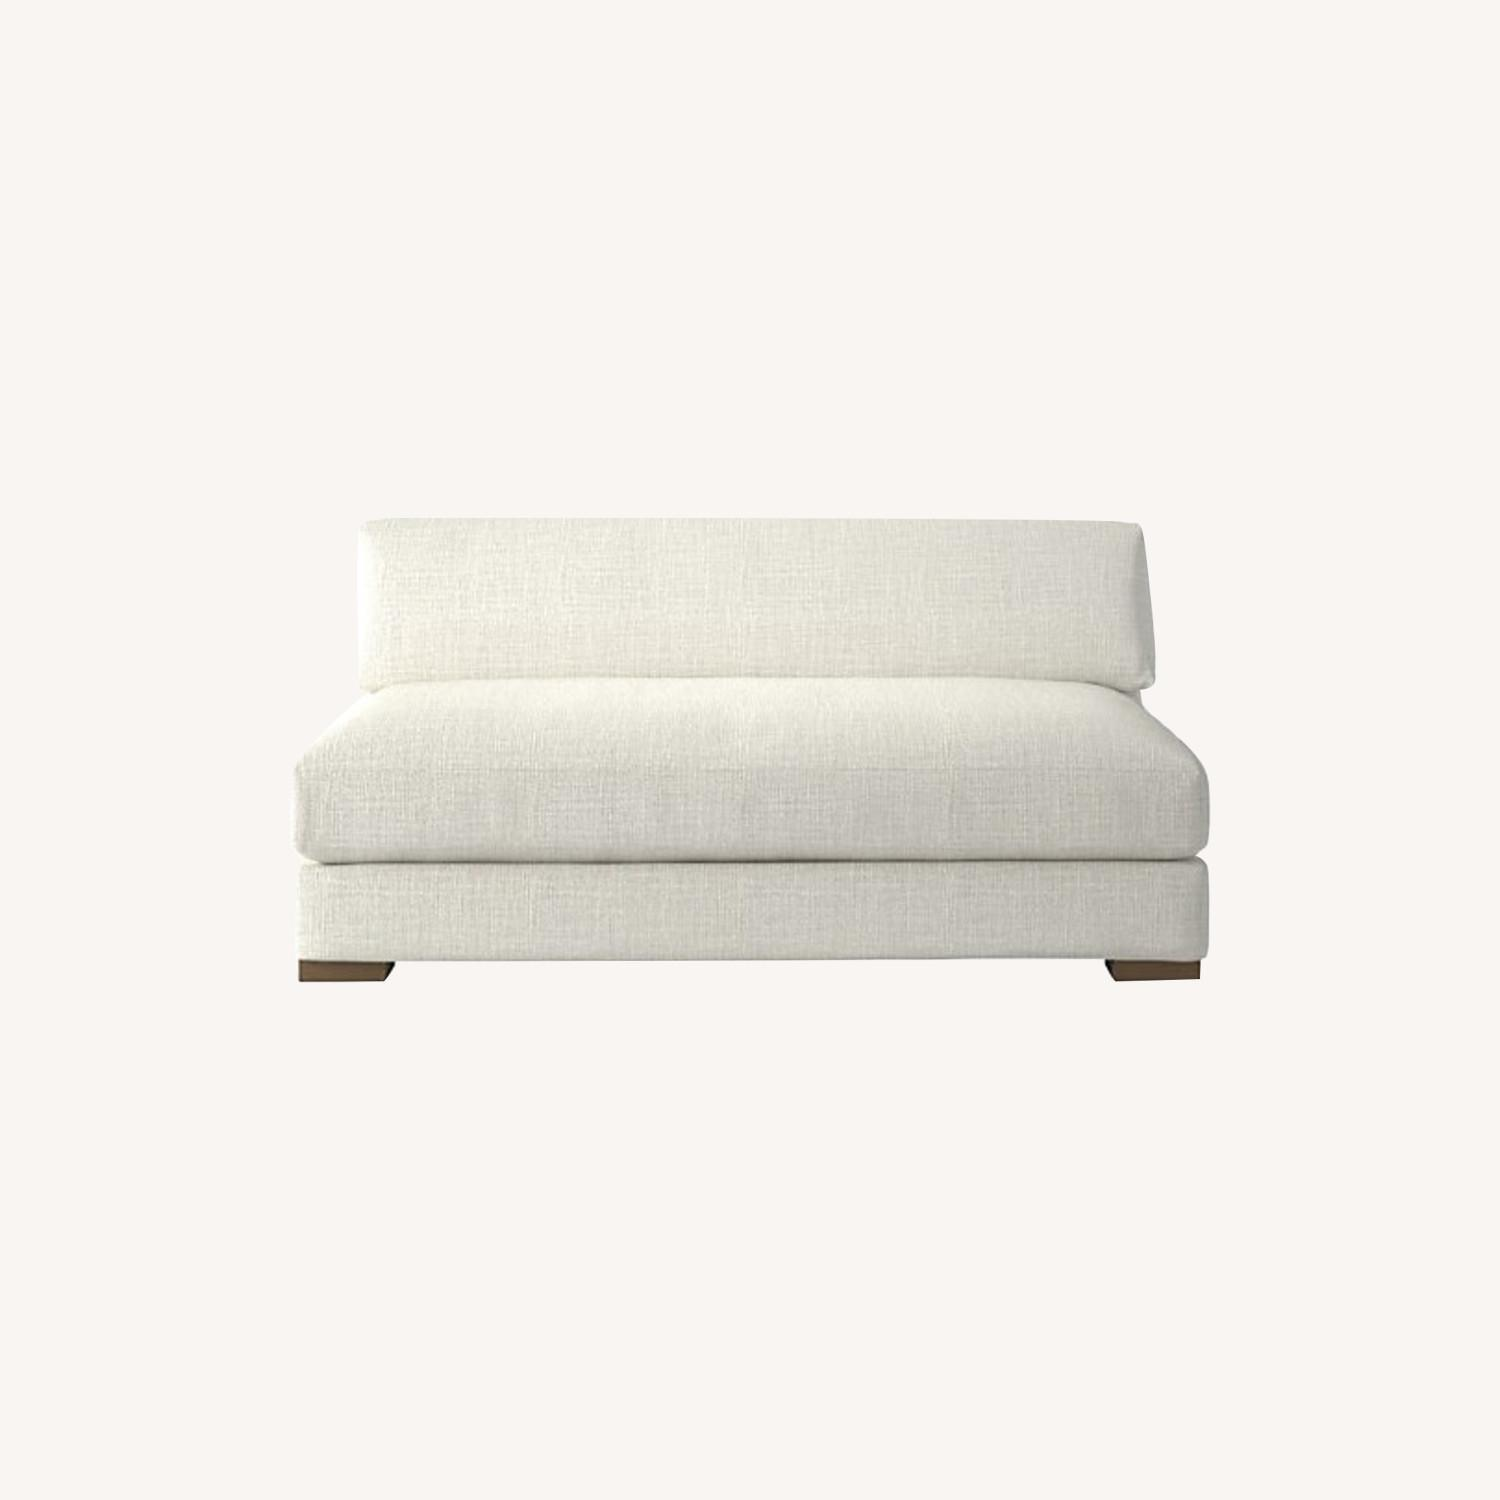 CB2 Piazza Apartment Sofa - image-0